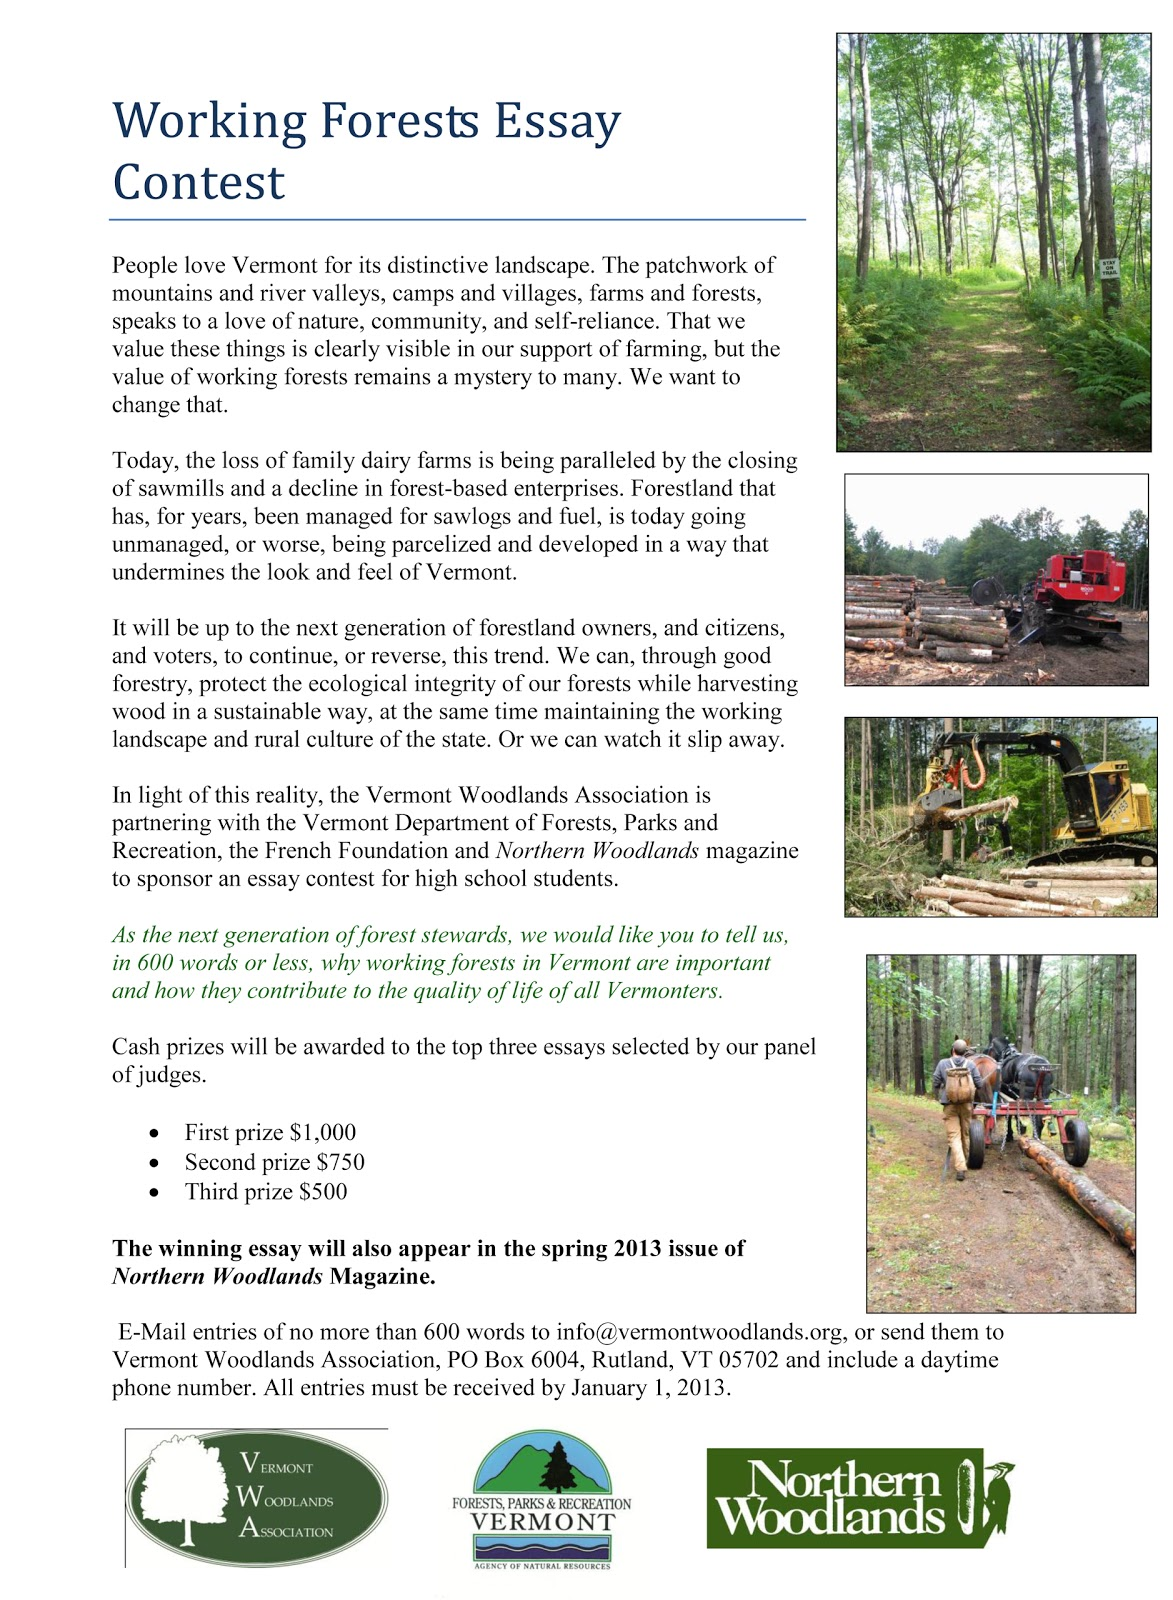 essay contest vermont state parks in light of this reality the vermont woodlands association is partnering the vermont department of forests parks and recreation